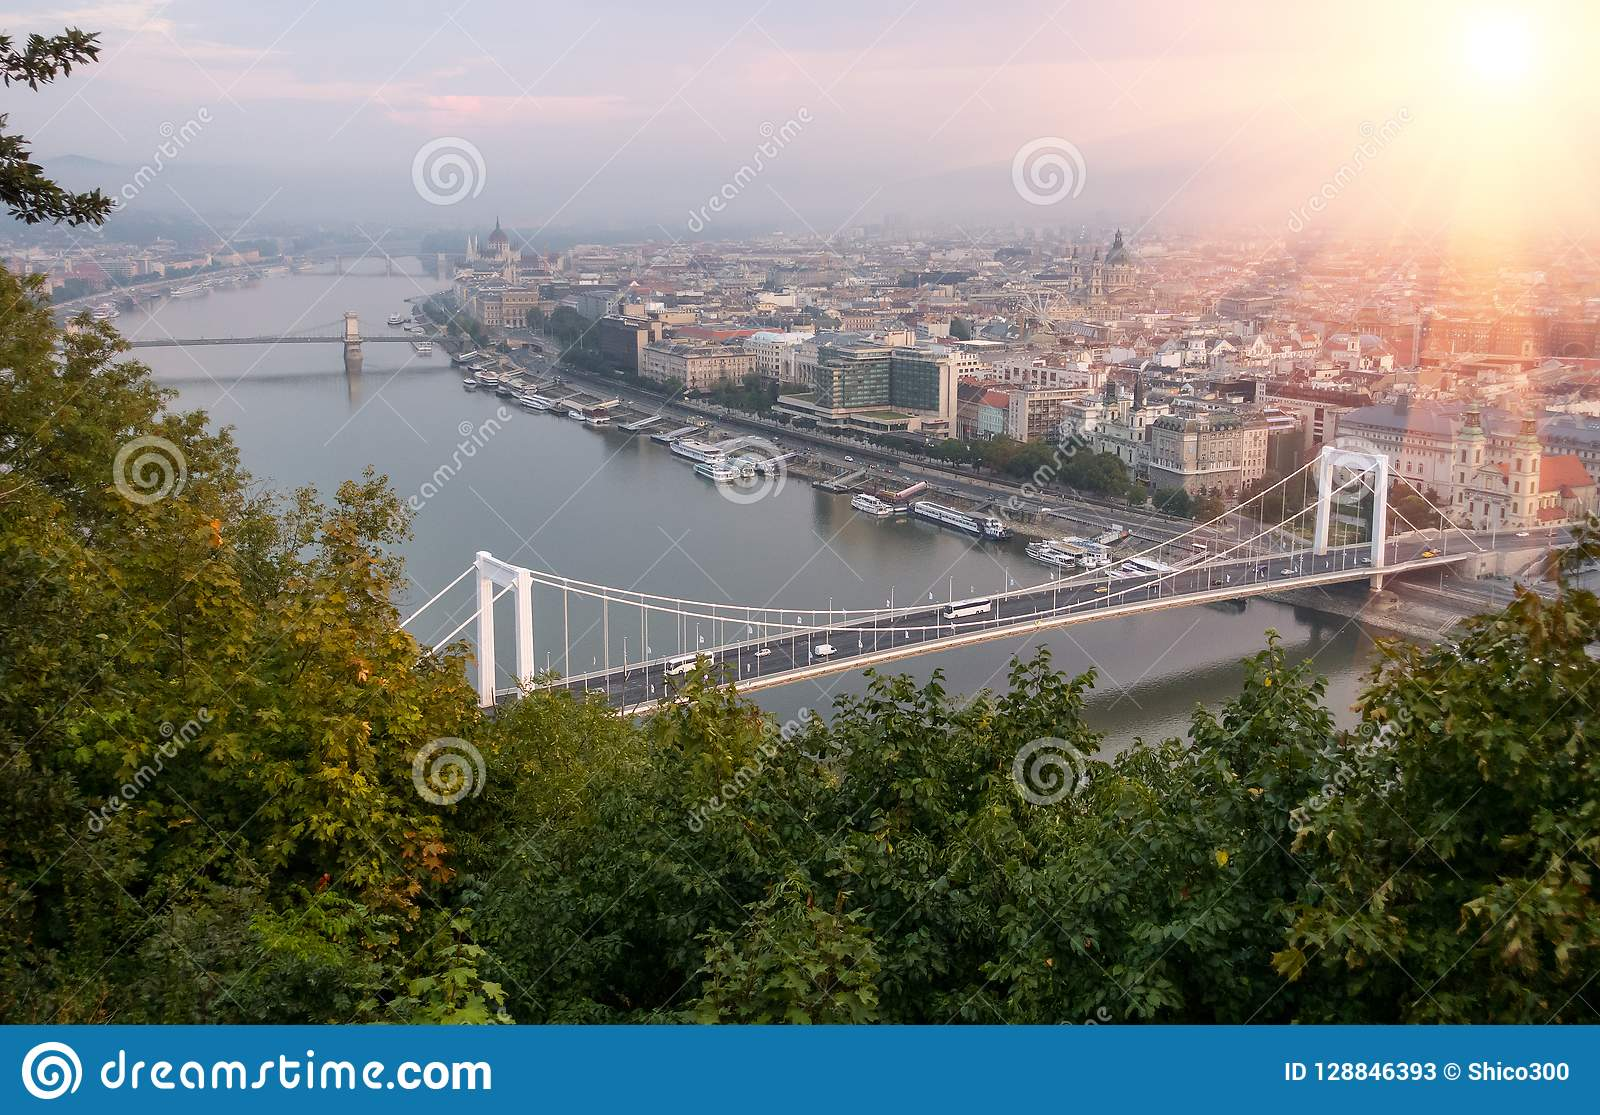 Cruise Ships And Ferries In The Evening At The Danube River